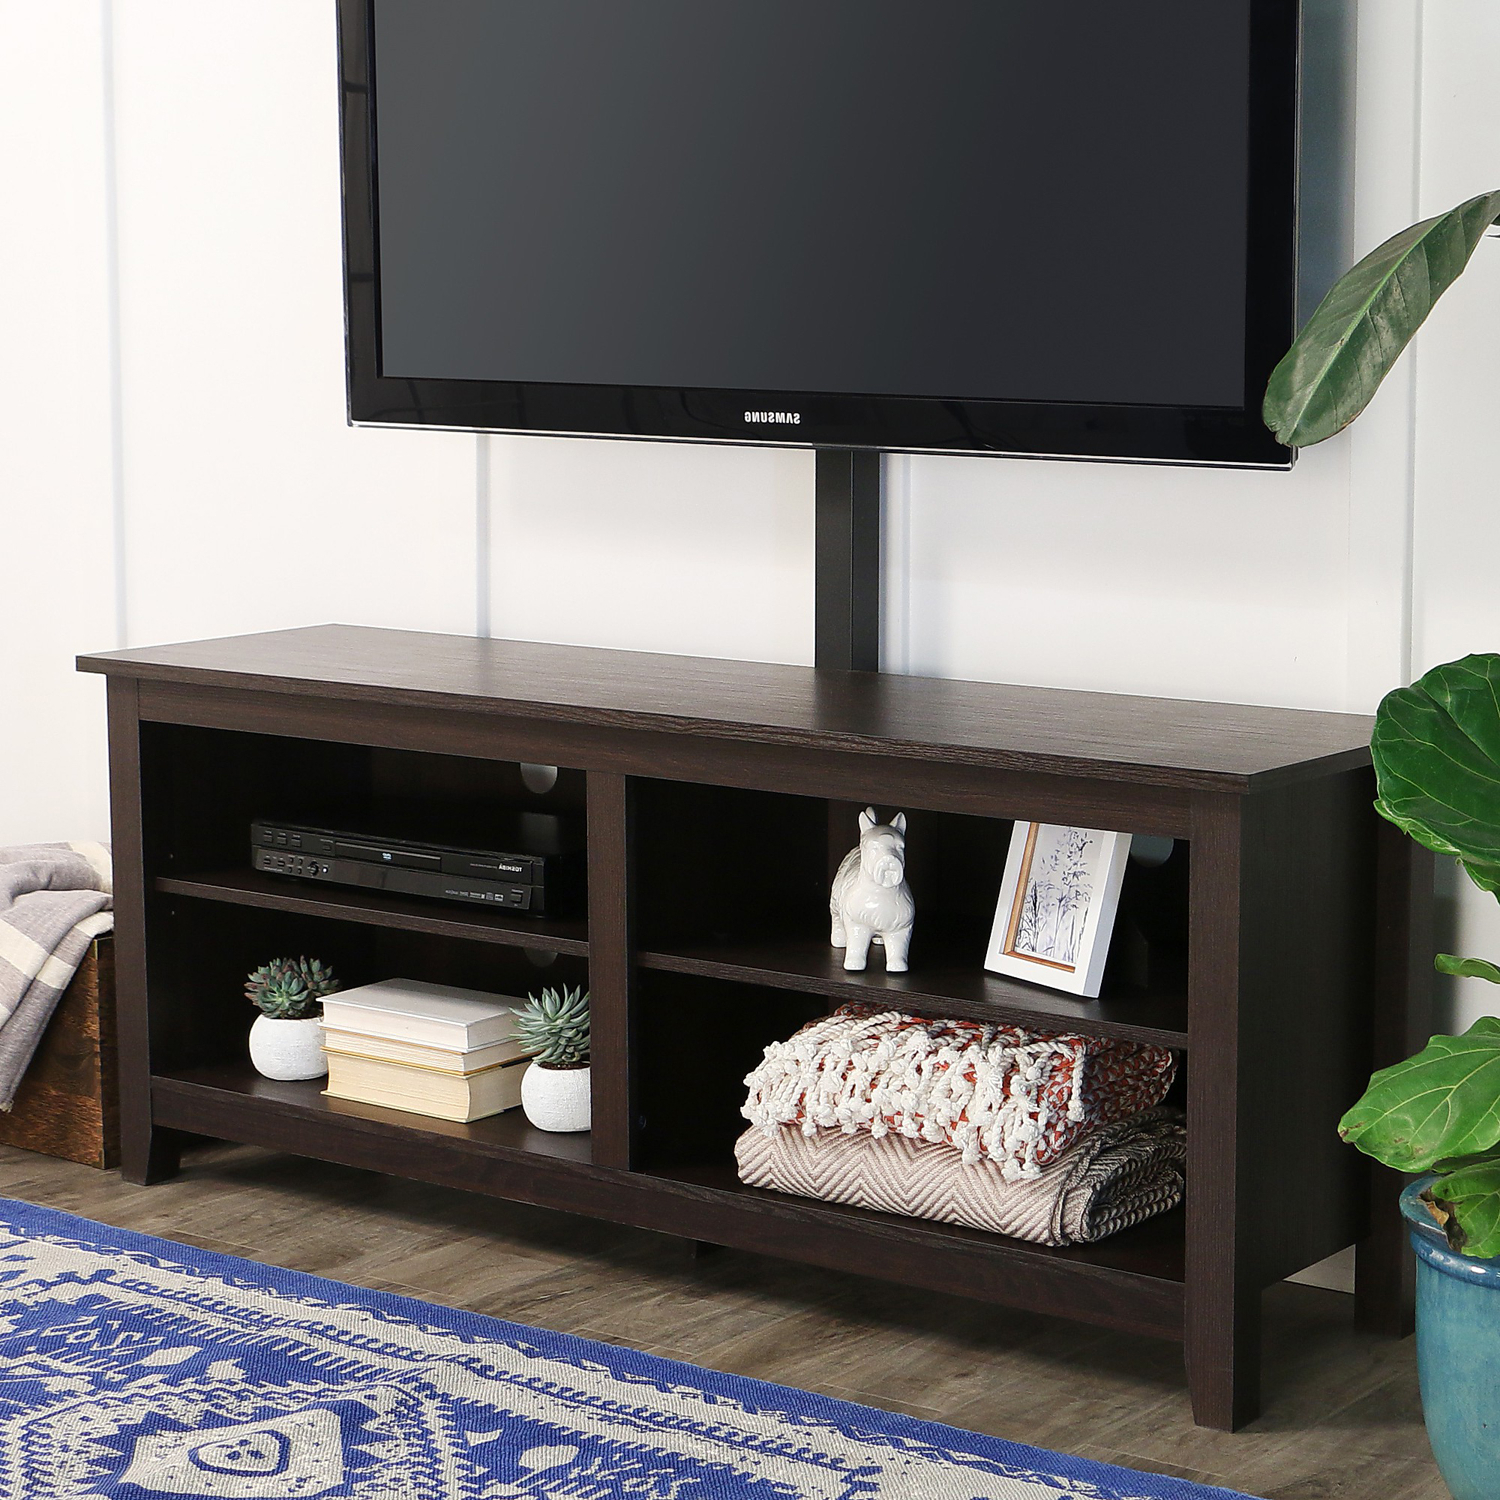 """Well Known Farmhouse Tv Stands For 75"""" Flat Screen With Console Table Storage Cabinet Within 58"""" Espresso Tv Stand Console With Mount – Pier1 Imports (View 4 of 10)"""